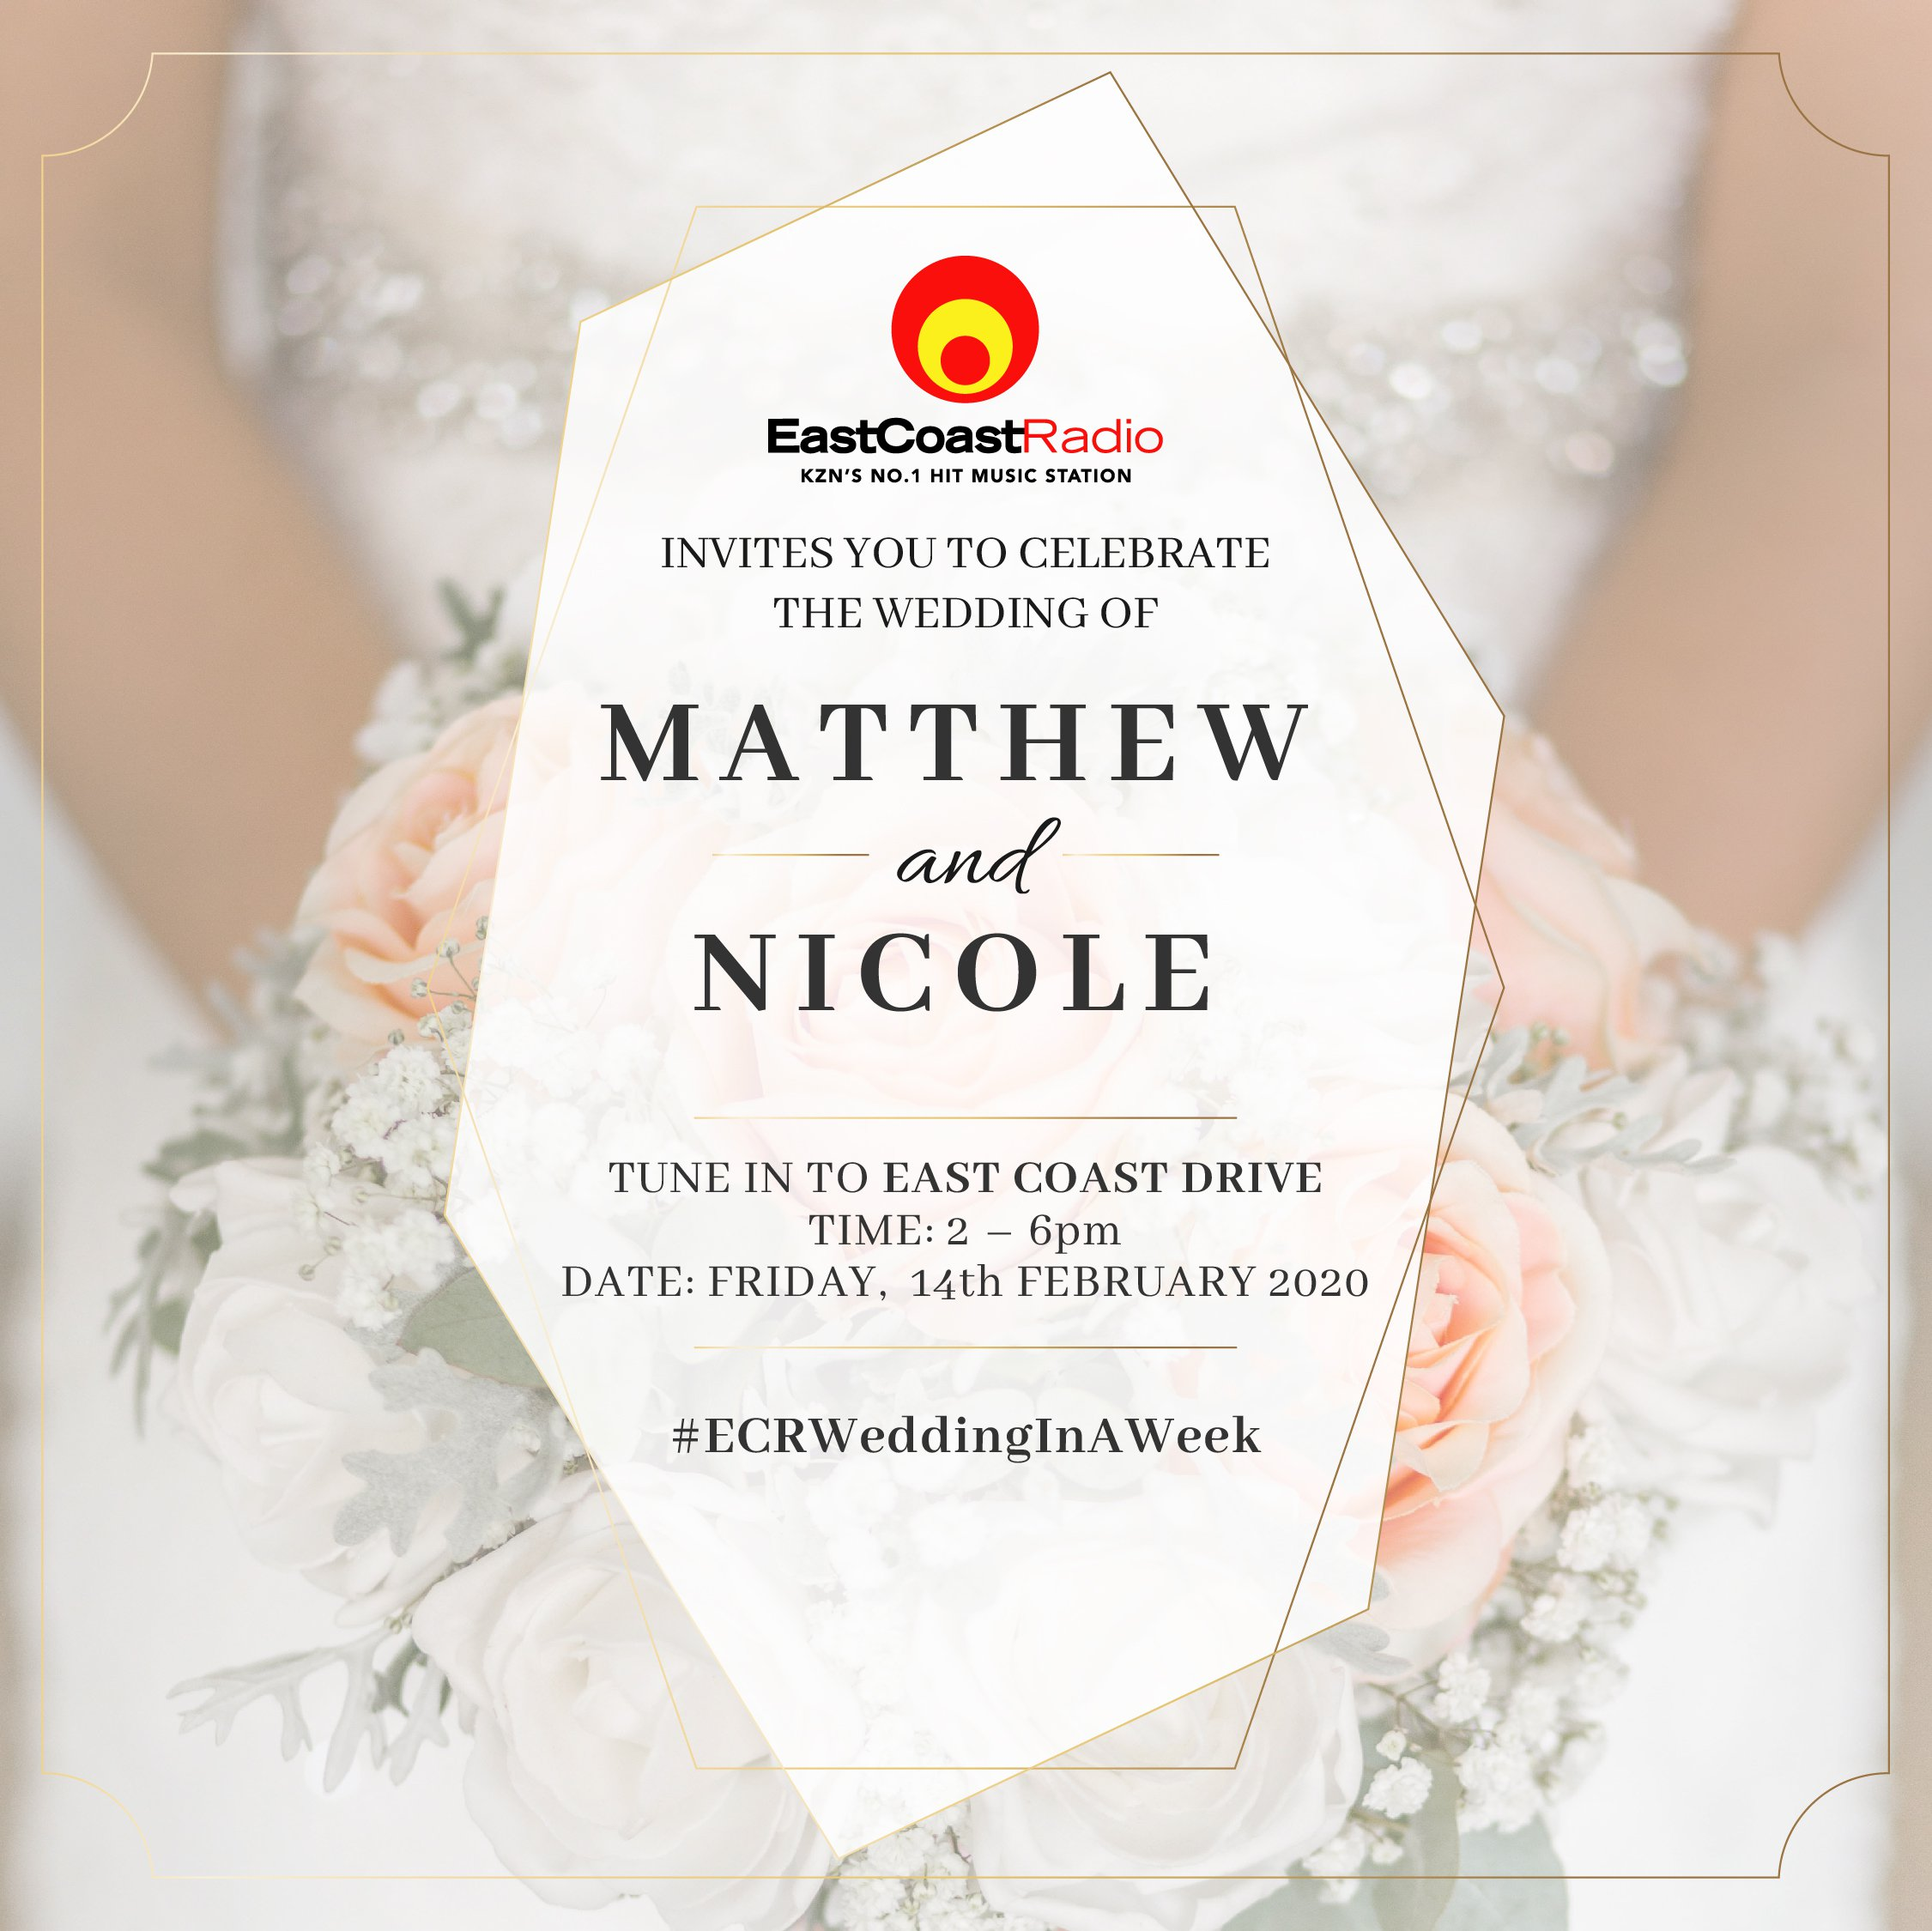 #ECRWeddingInAWeek wedding invitation